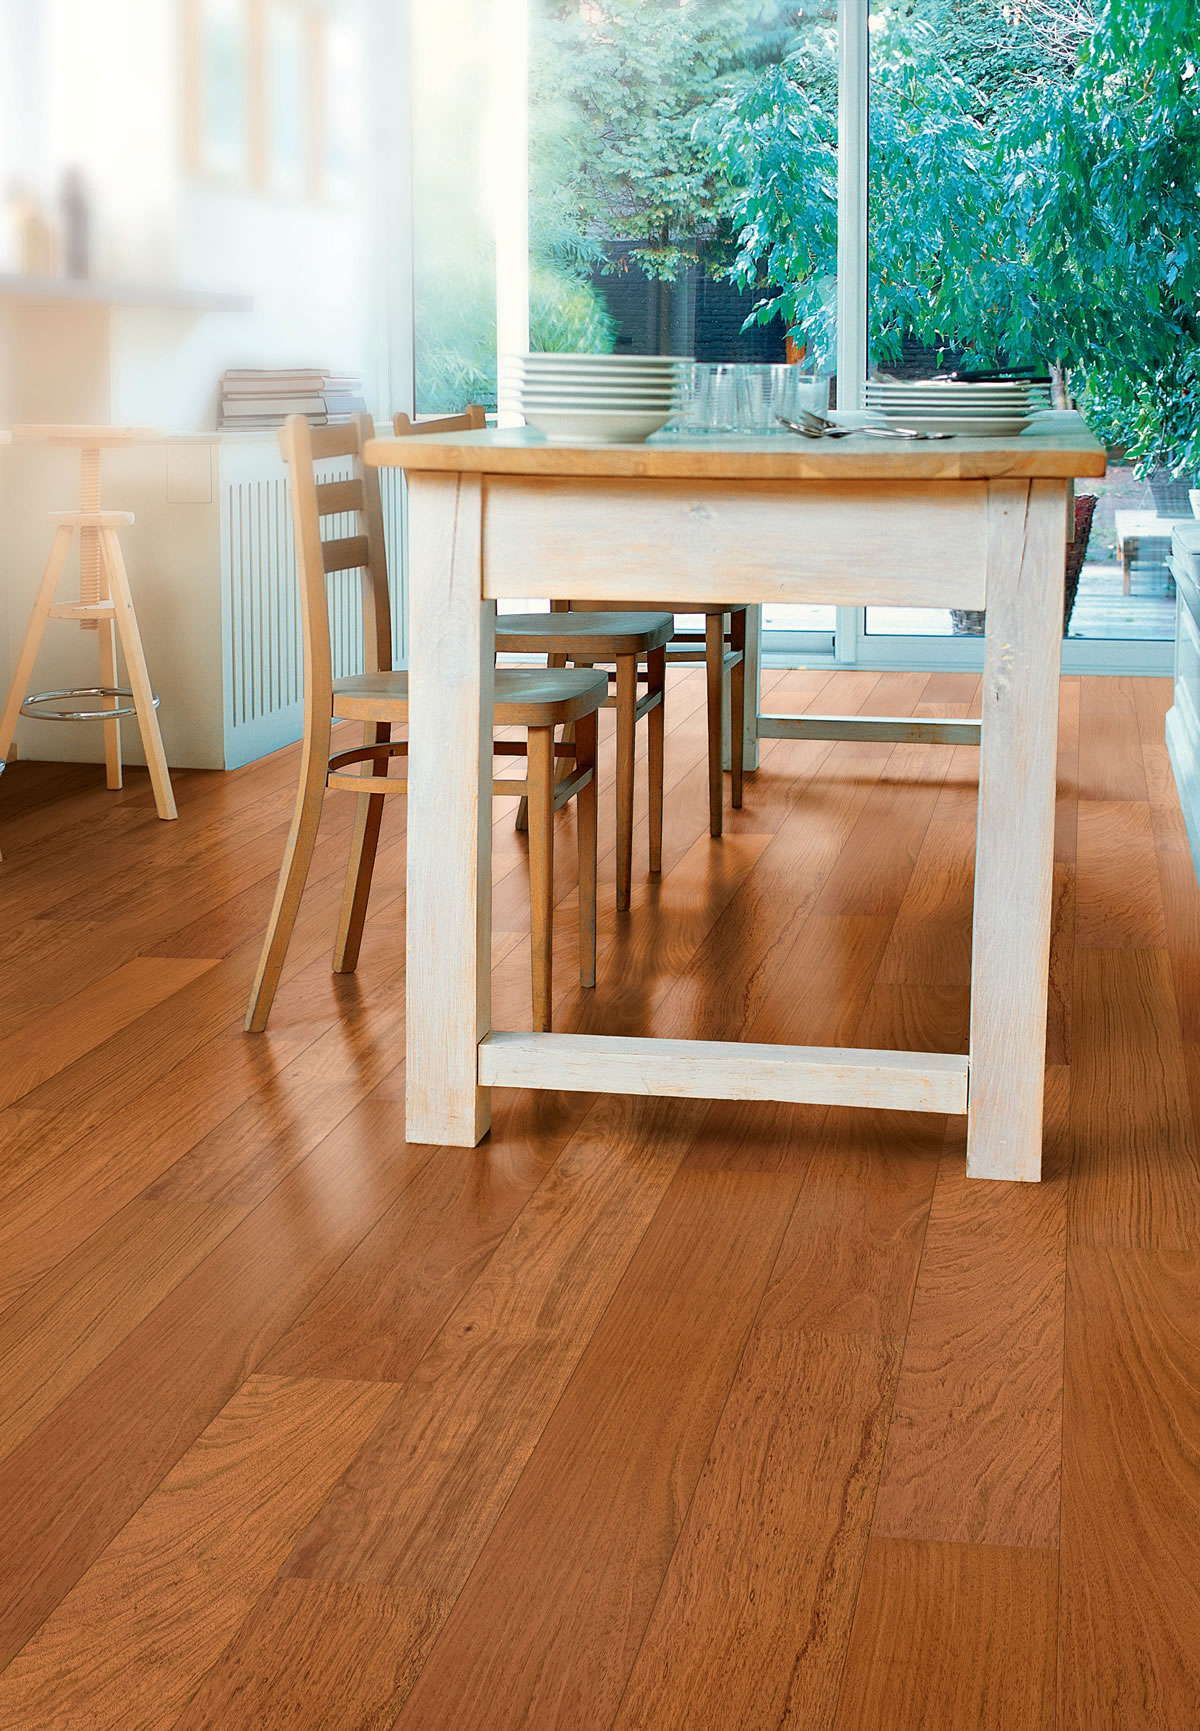 Quickstep Castello Jatoba Satin CAS1358 Engineered Wood Flooring. To assist with installation, each pack contains one split plank, which is a full size board jointed in the middle.